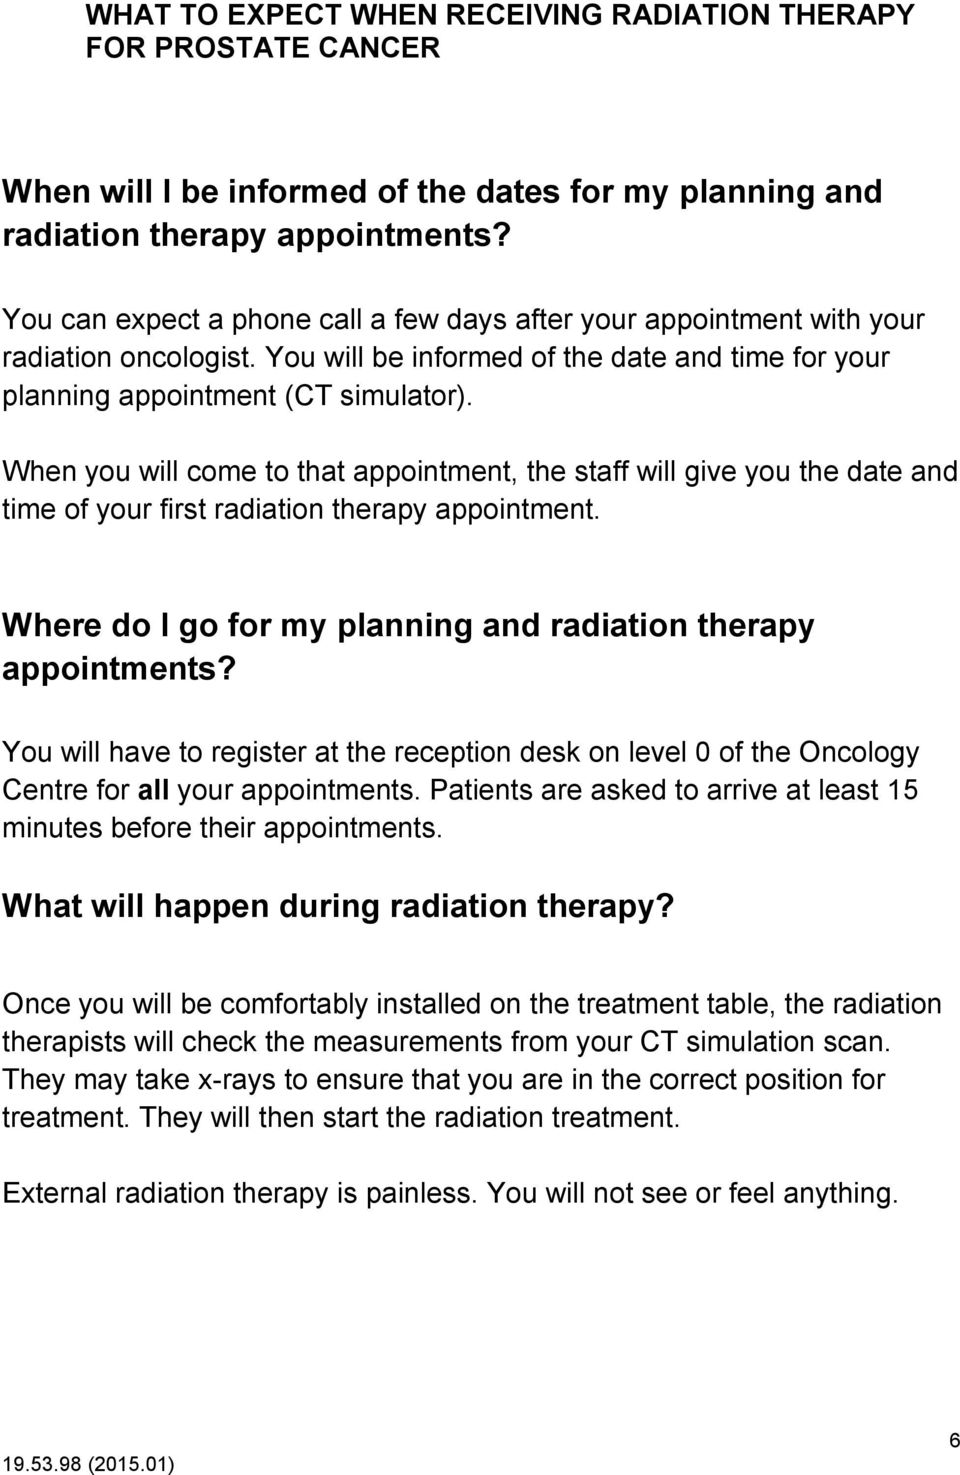 When you will come to that appointment, the staff will give you the date and time of your first radiation therapy appointment. Where do I go for my planning and radiation therapy appointments?